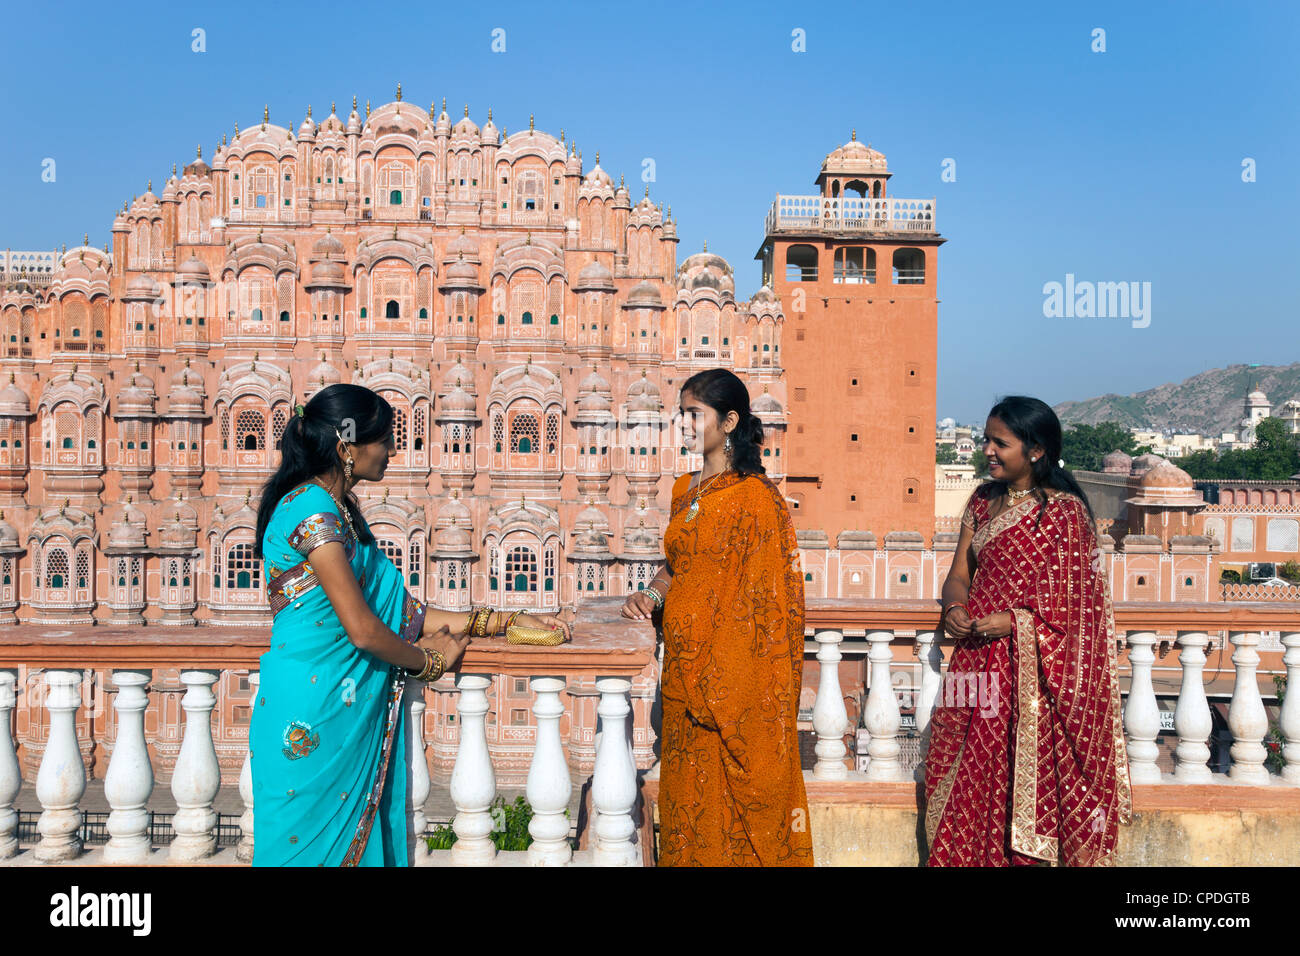 Hawa Mahal (Palace of the Winds), built in 1799, Jaipur, Rajasthan, India, Asia - Stock Image